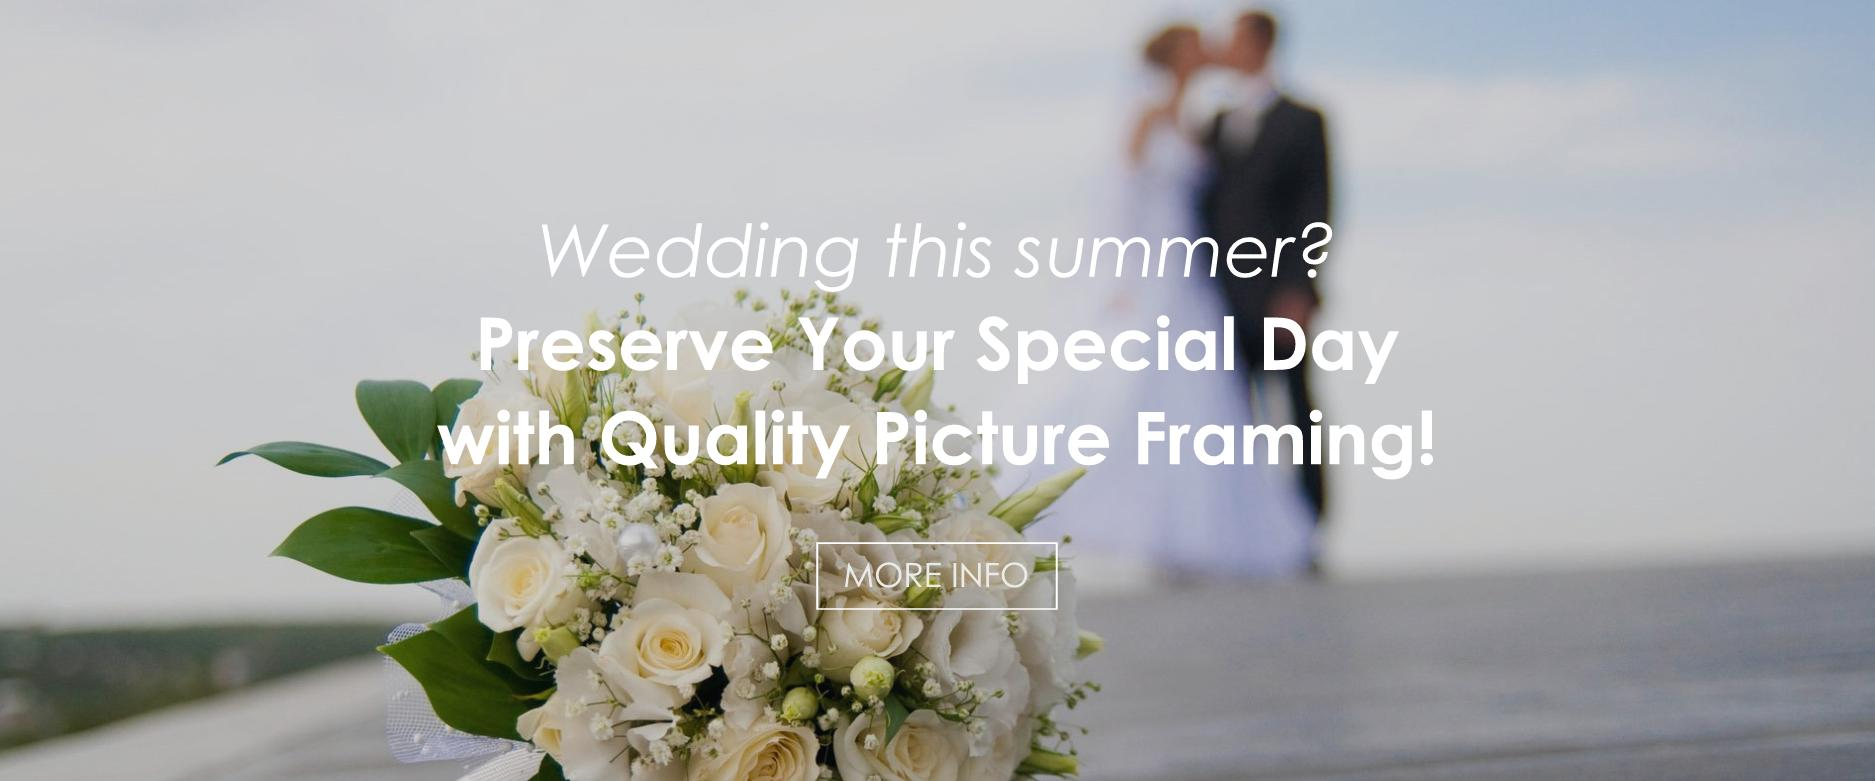 Wedding Picture Framing Special